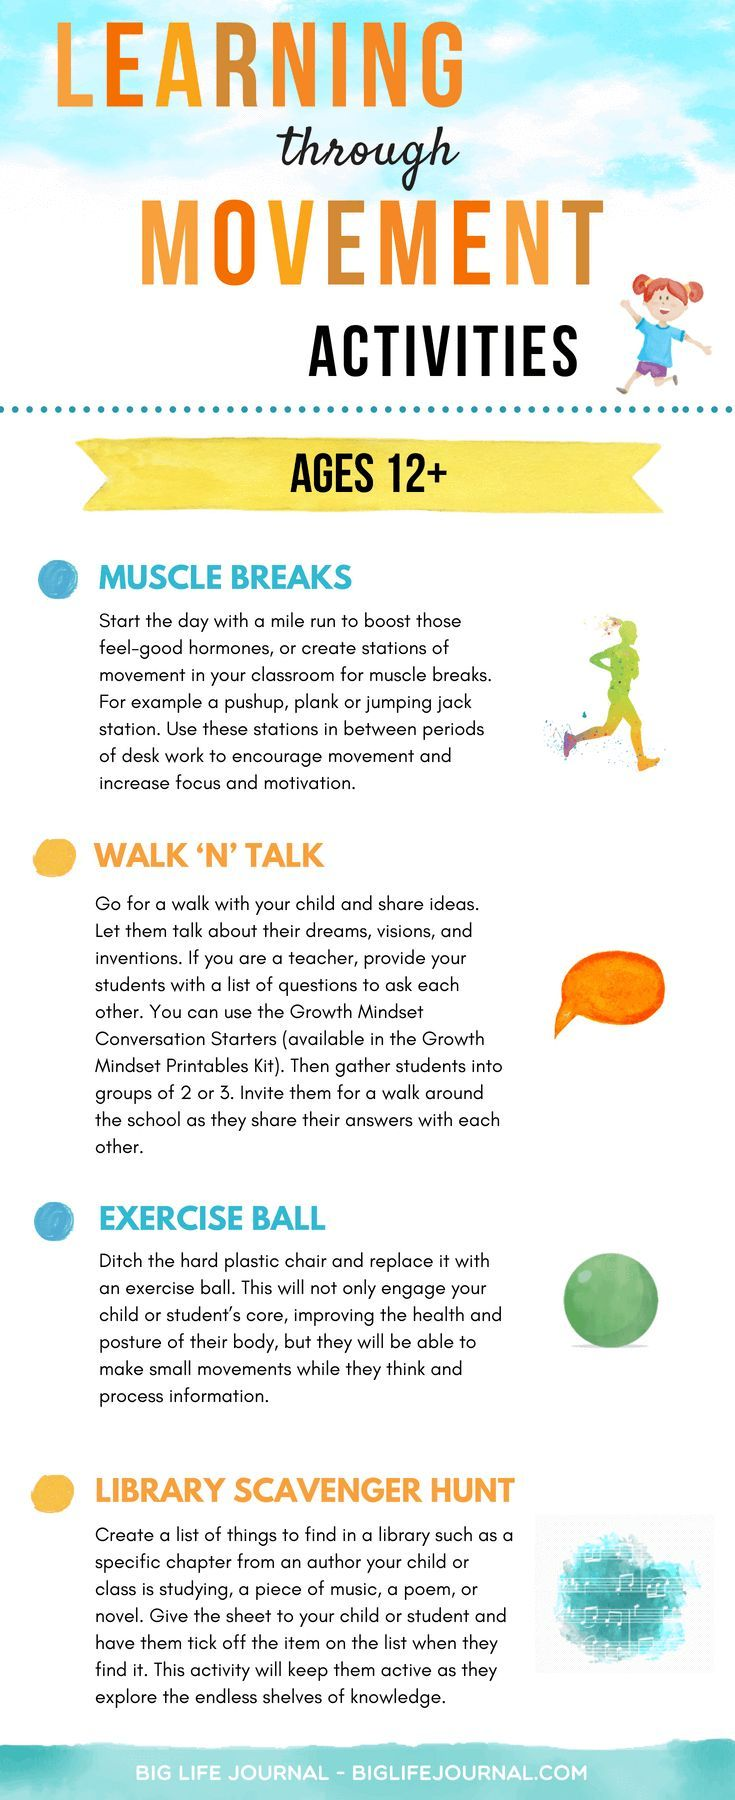 How To Raise Smart Kids through Movement (15 AgeSpecific